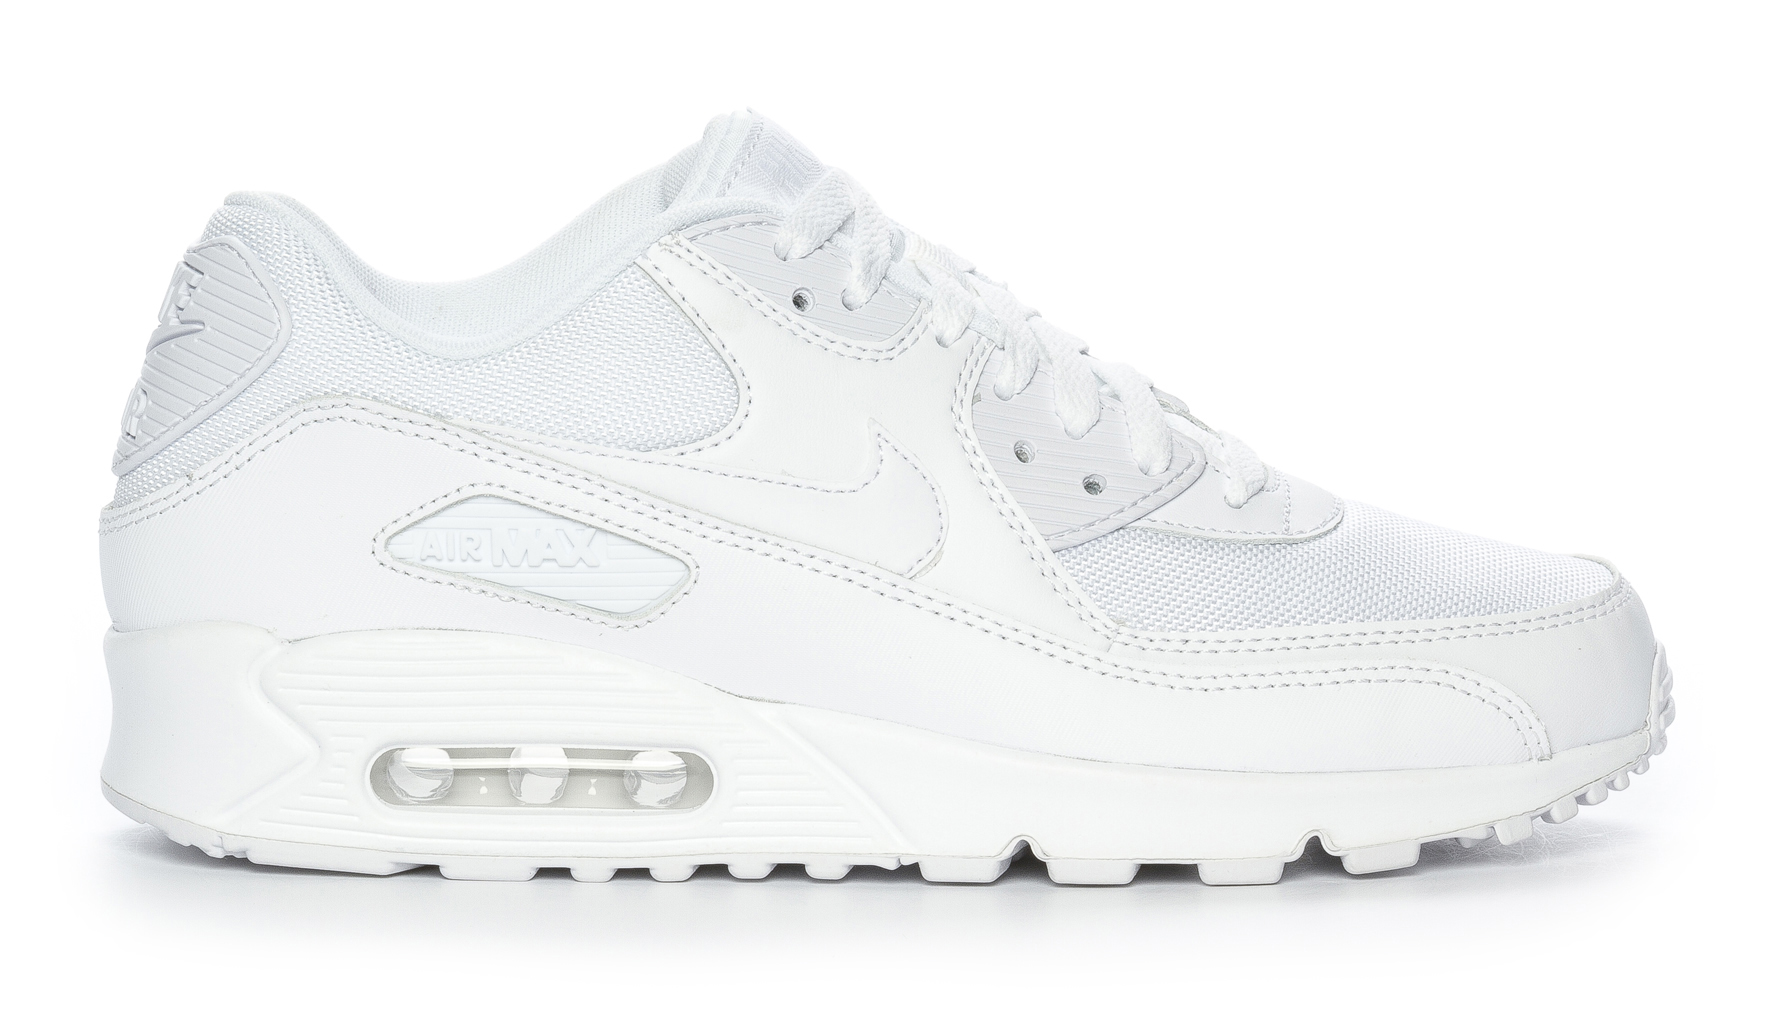 uk availability 5aaa6 ea19c ... norway nike air max 90 essential vita 293541 feetfirst.se bafb6 0d791